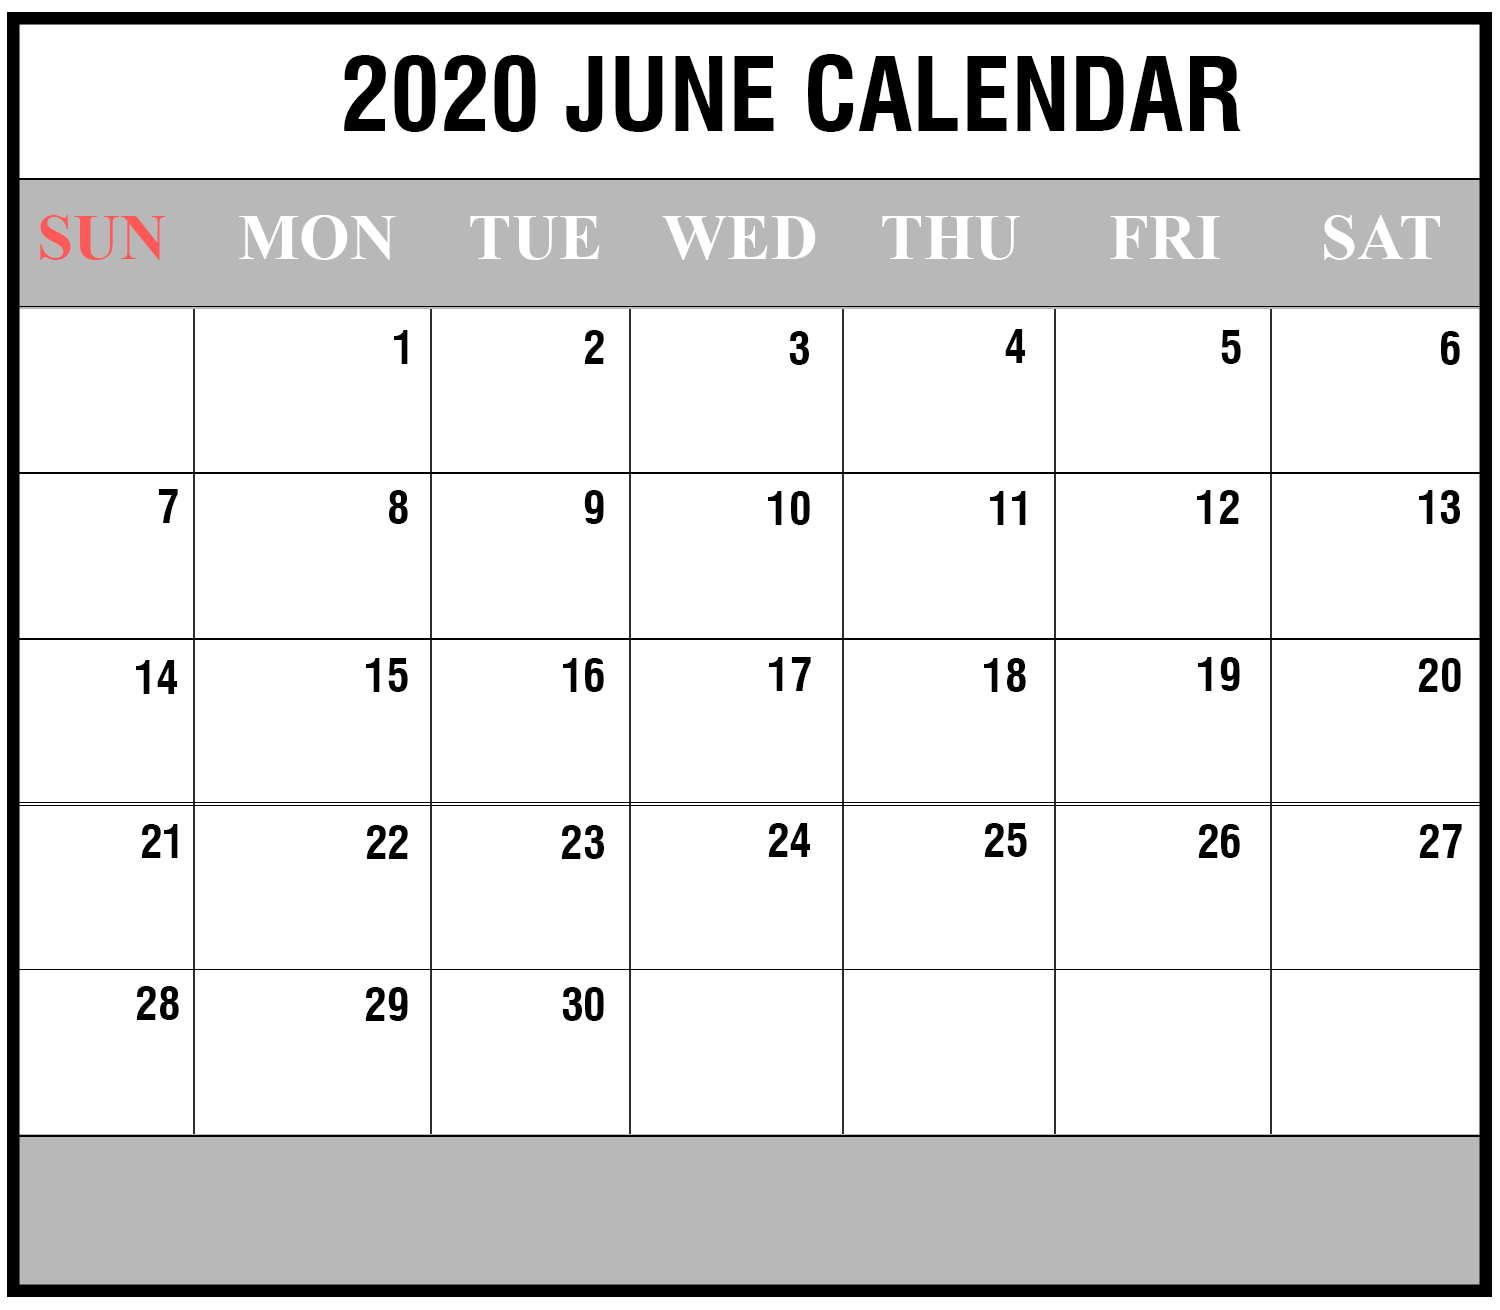 2020 June Portrait Calendar Template